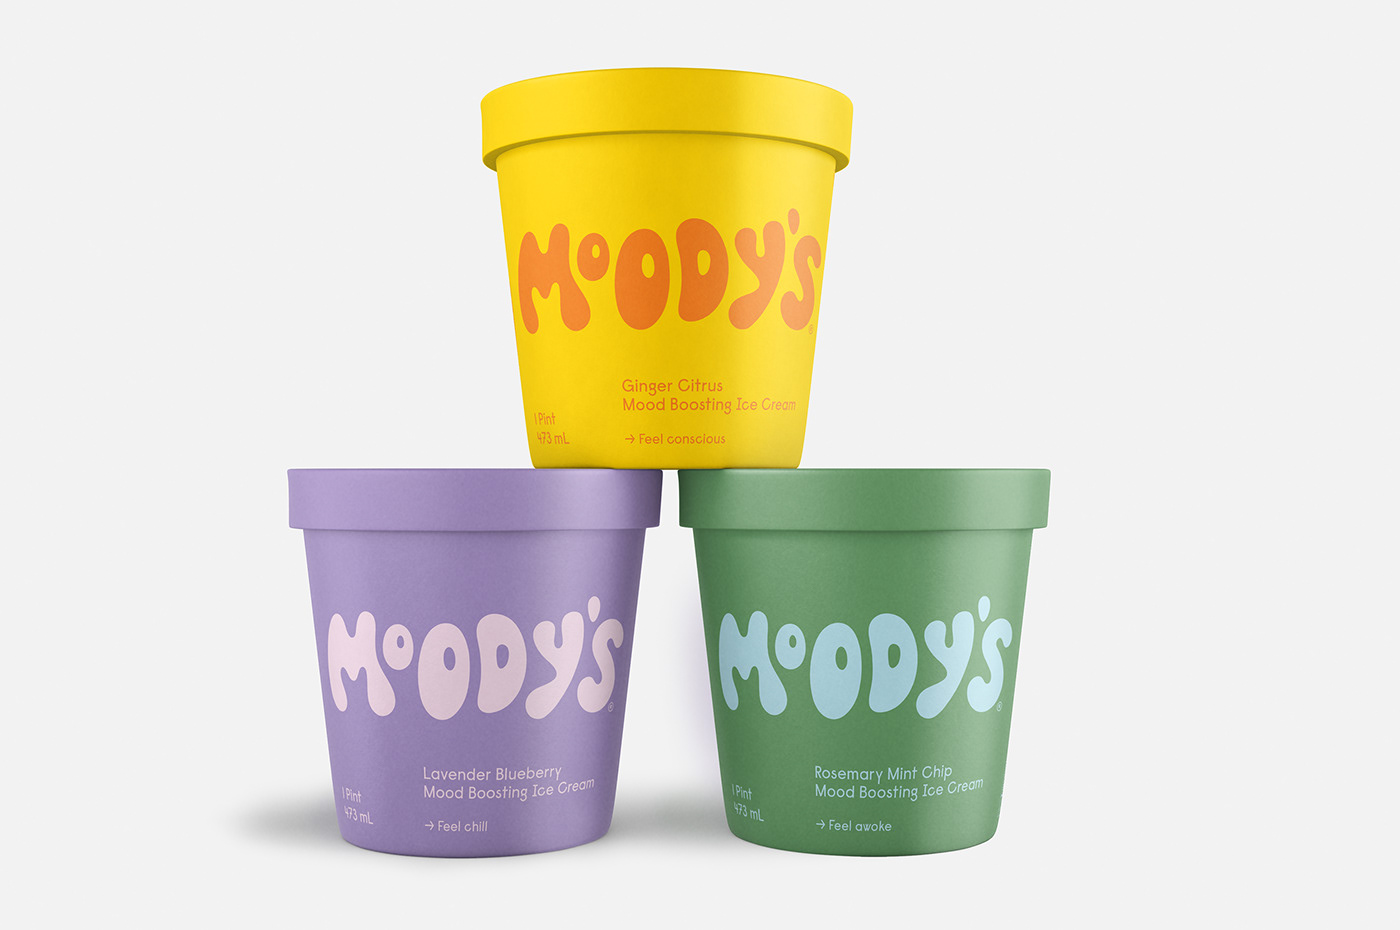 Moody's packaging and branding design by Abby Haddican Studio